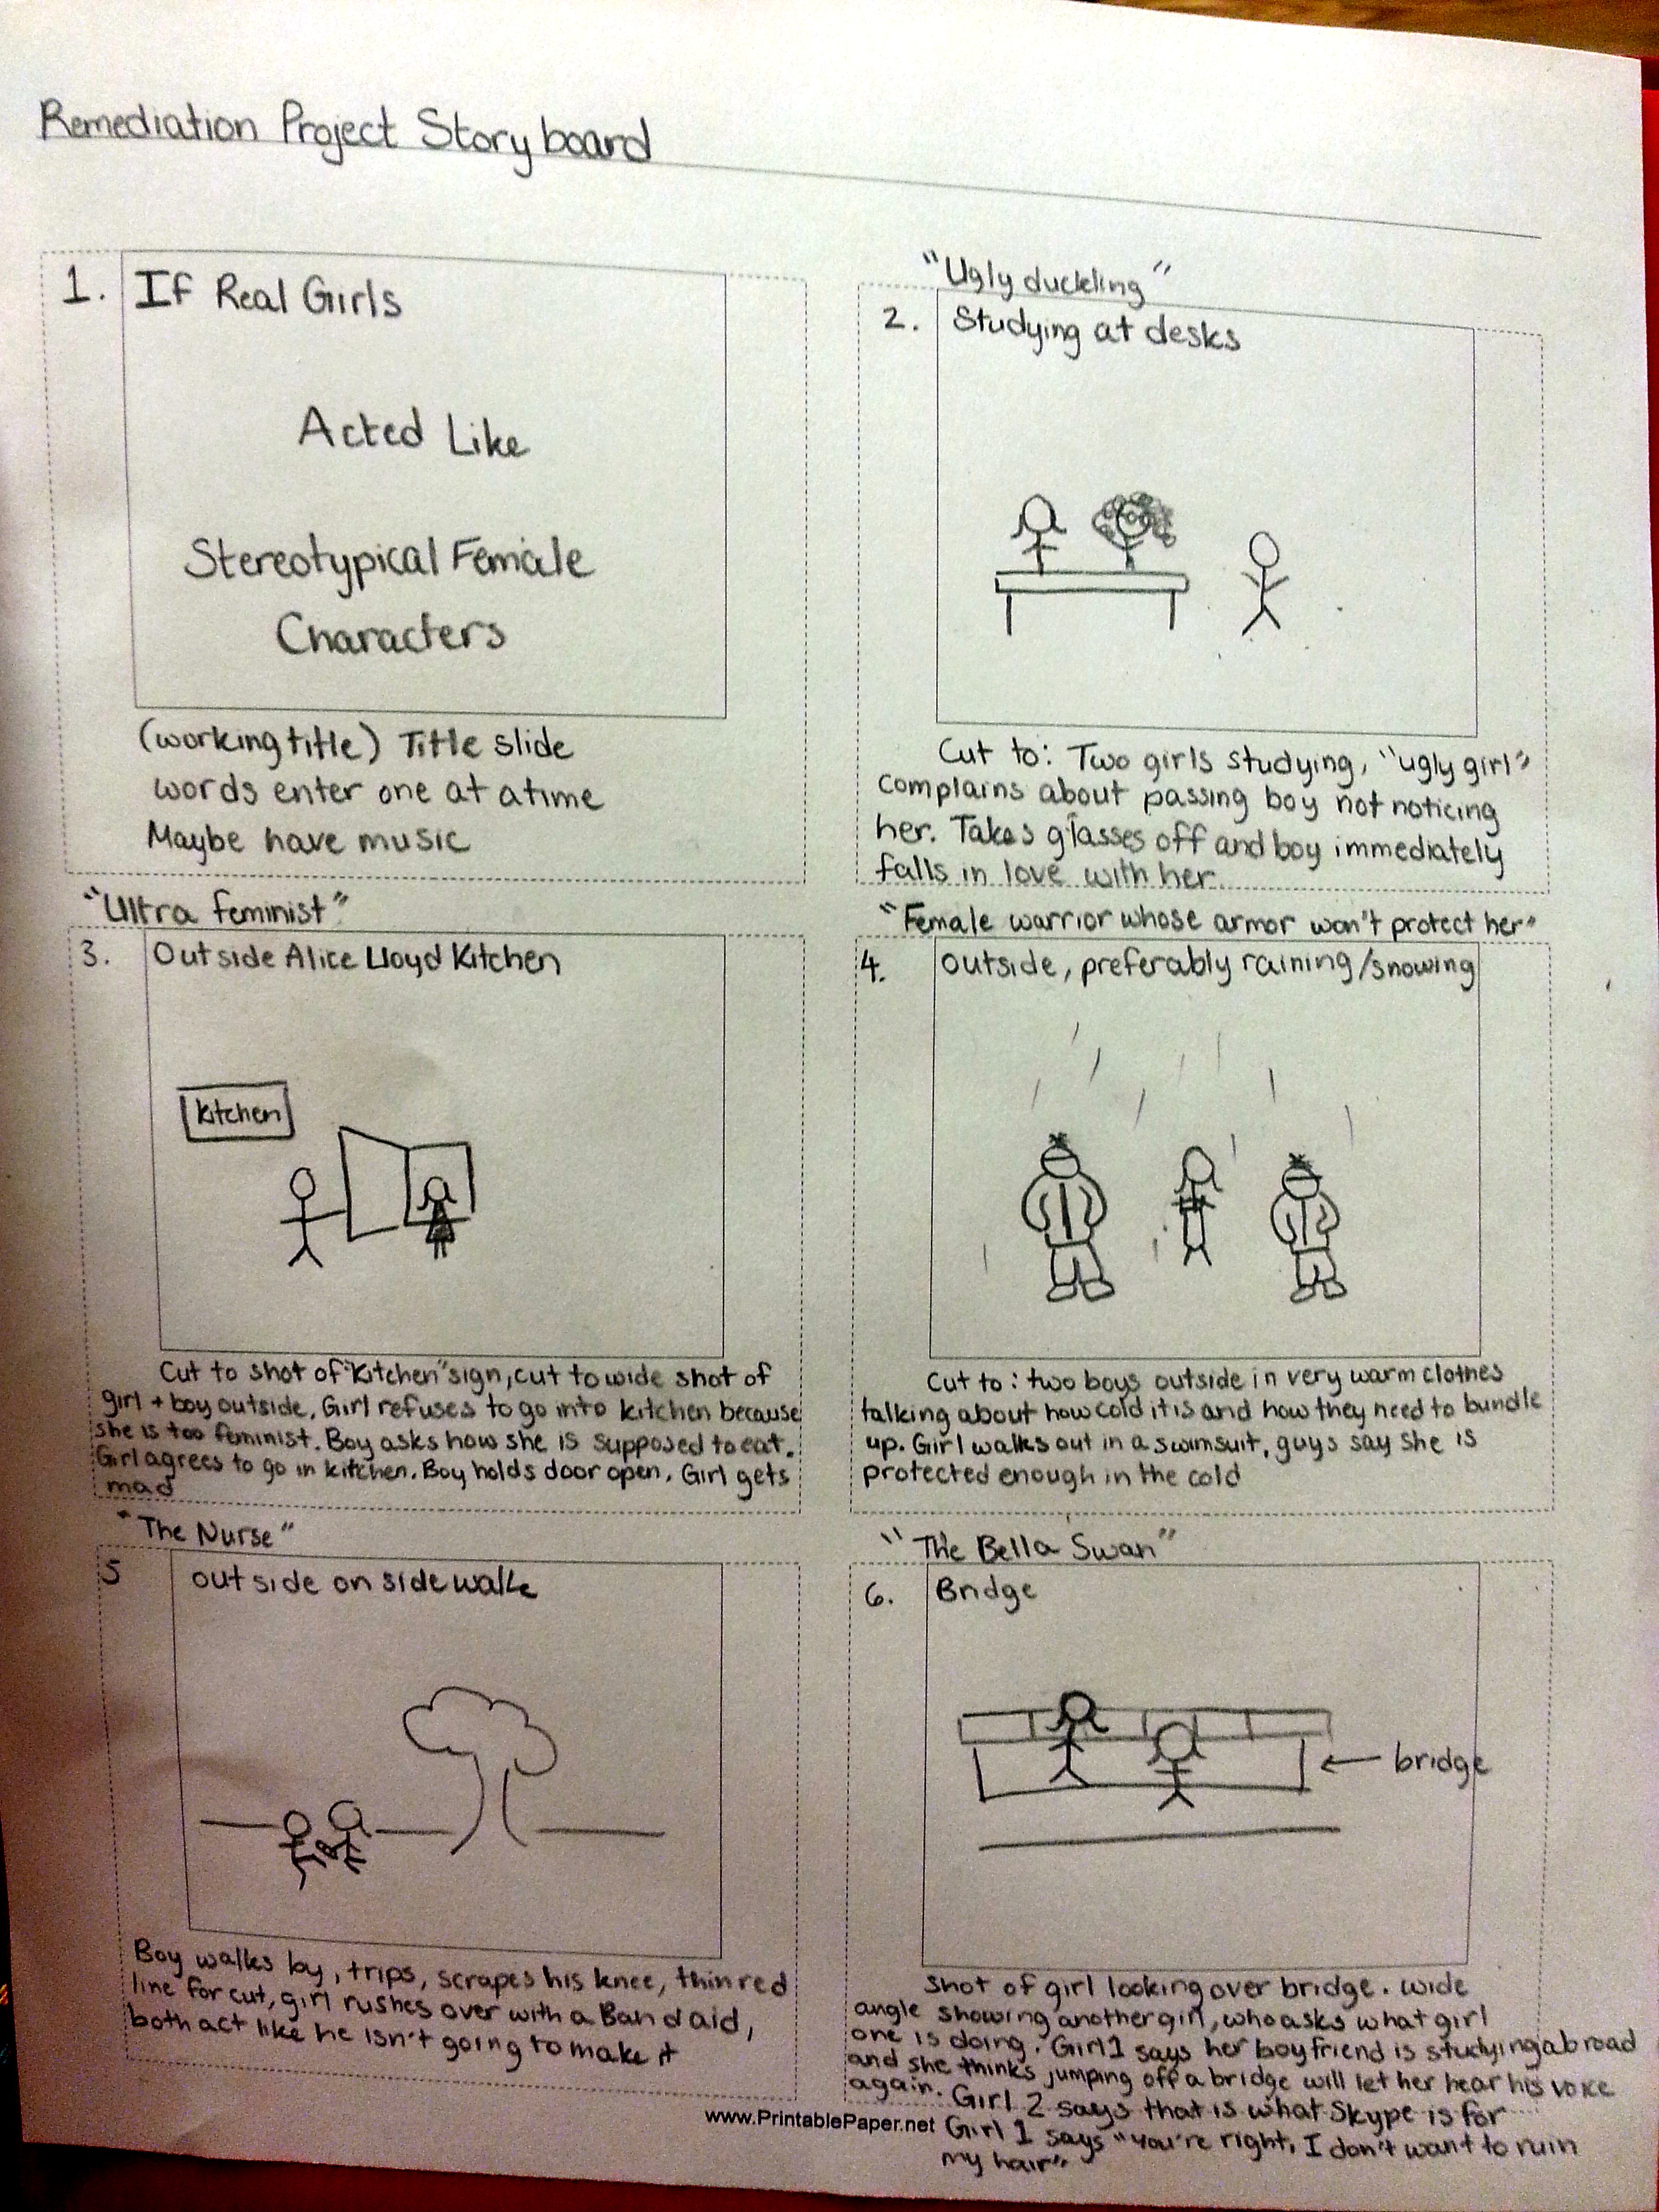 Storyboard for Remediation Project, six panels, stick figure drawings in each with captions at the bottom